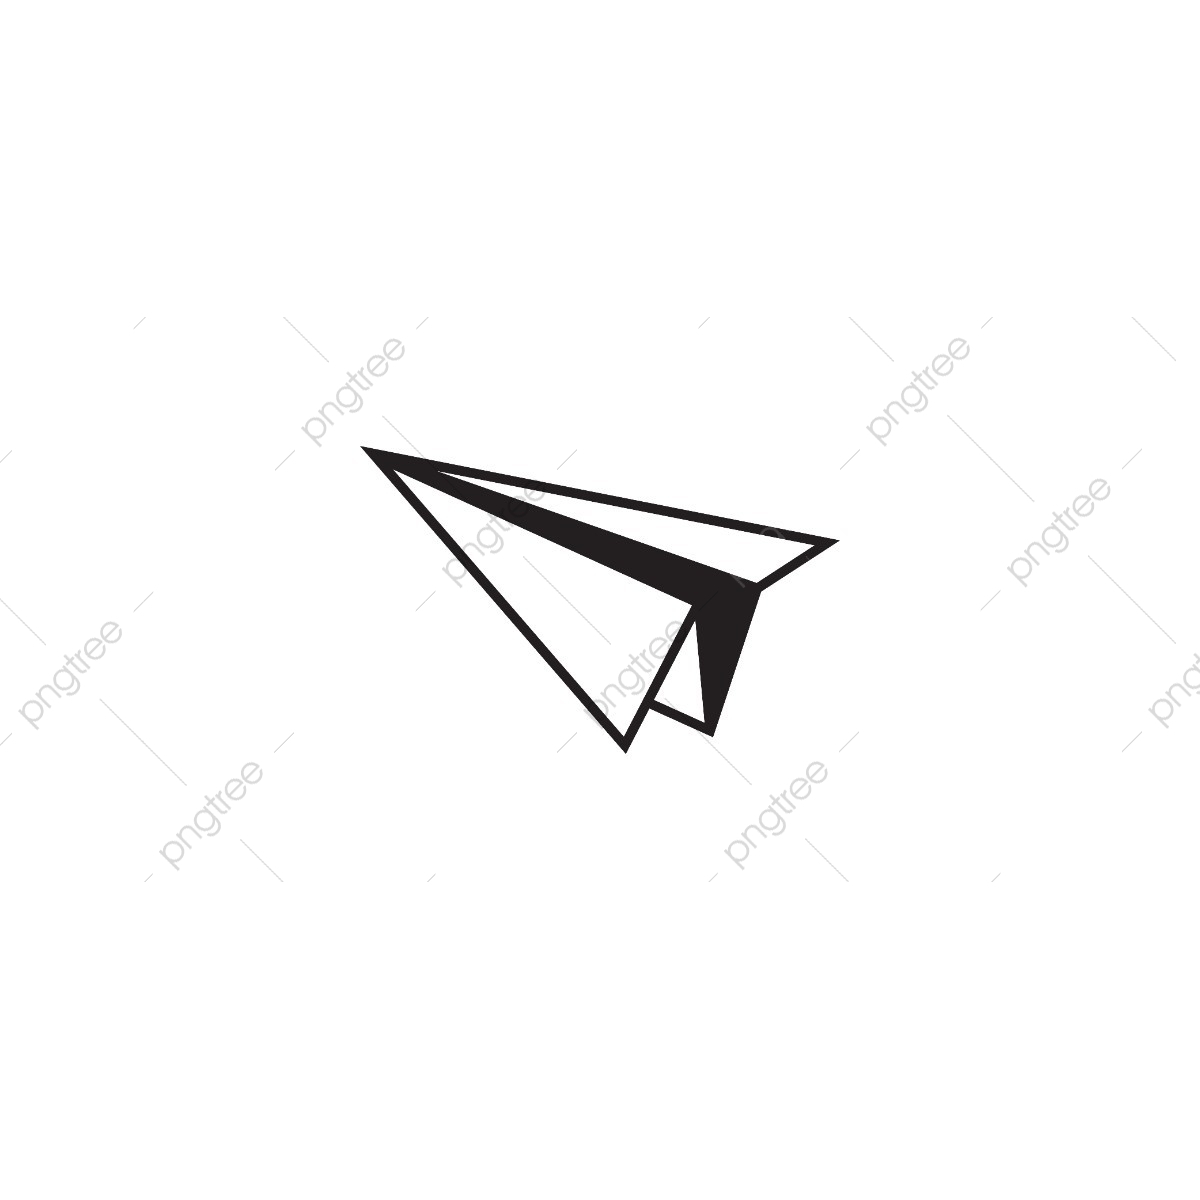 Paper Plane Graphic Template, Plane, Graphic, Symbol PNG and.